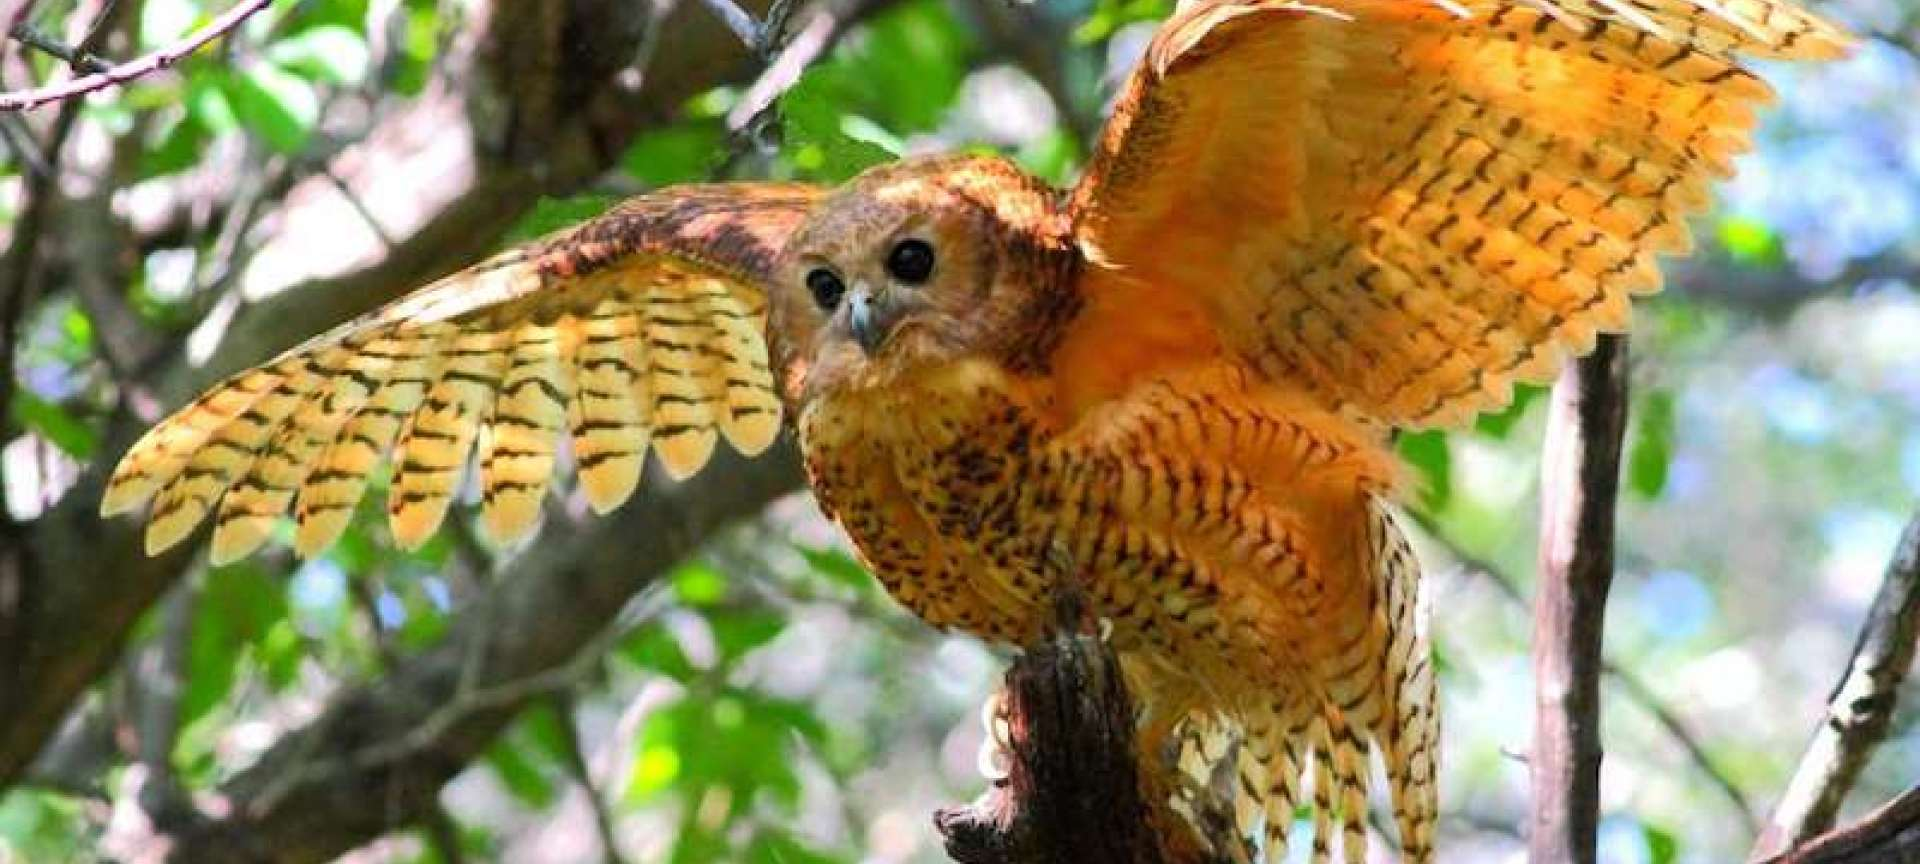 The Pels fishsing owl is an amazing bird of prey